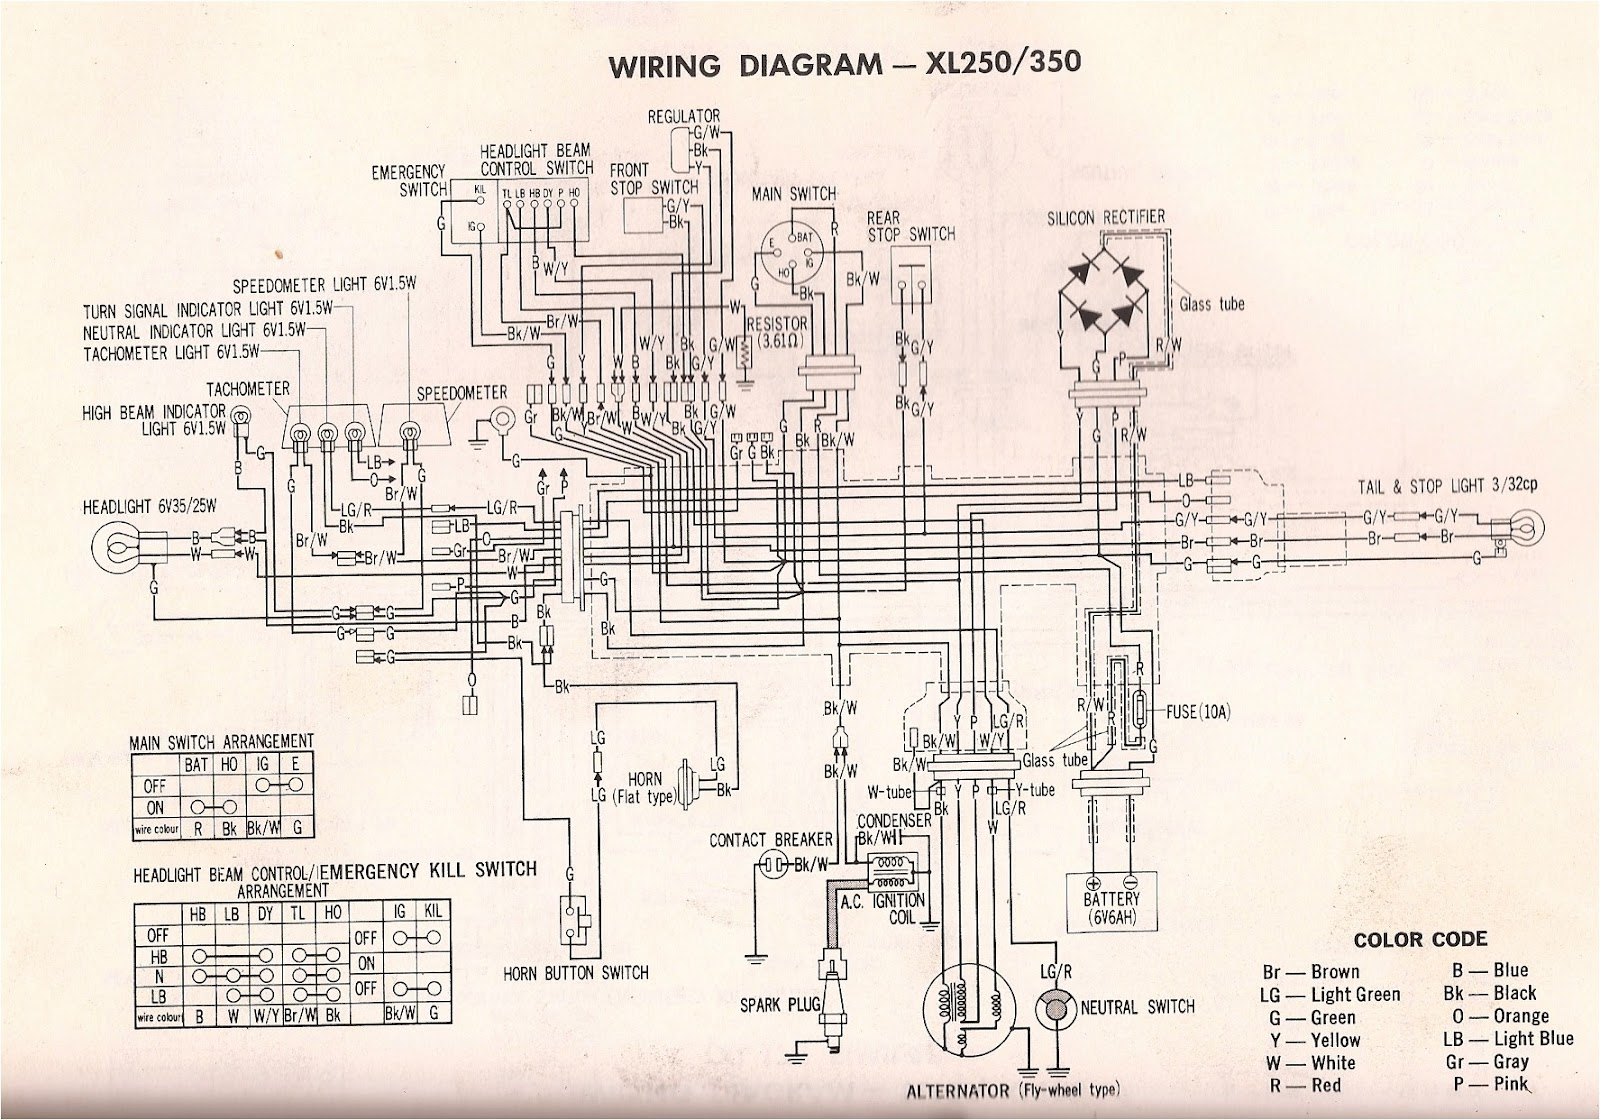 XL350+Wiring+diagram+S r4l xl350 wiring diagram (and xl250) honda c70 wiring diagram images at webbmarketing.co